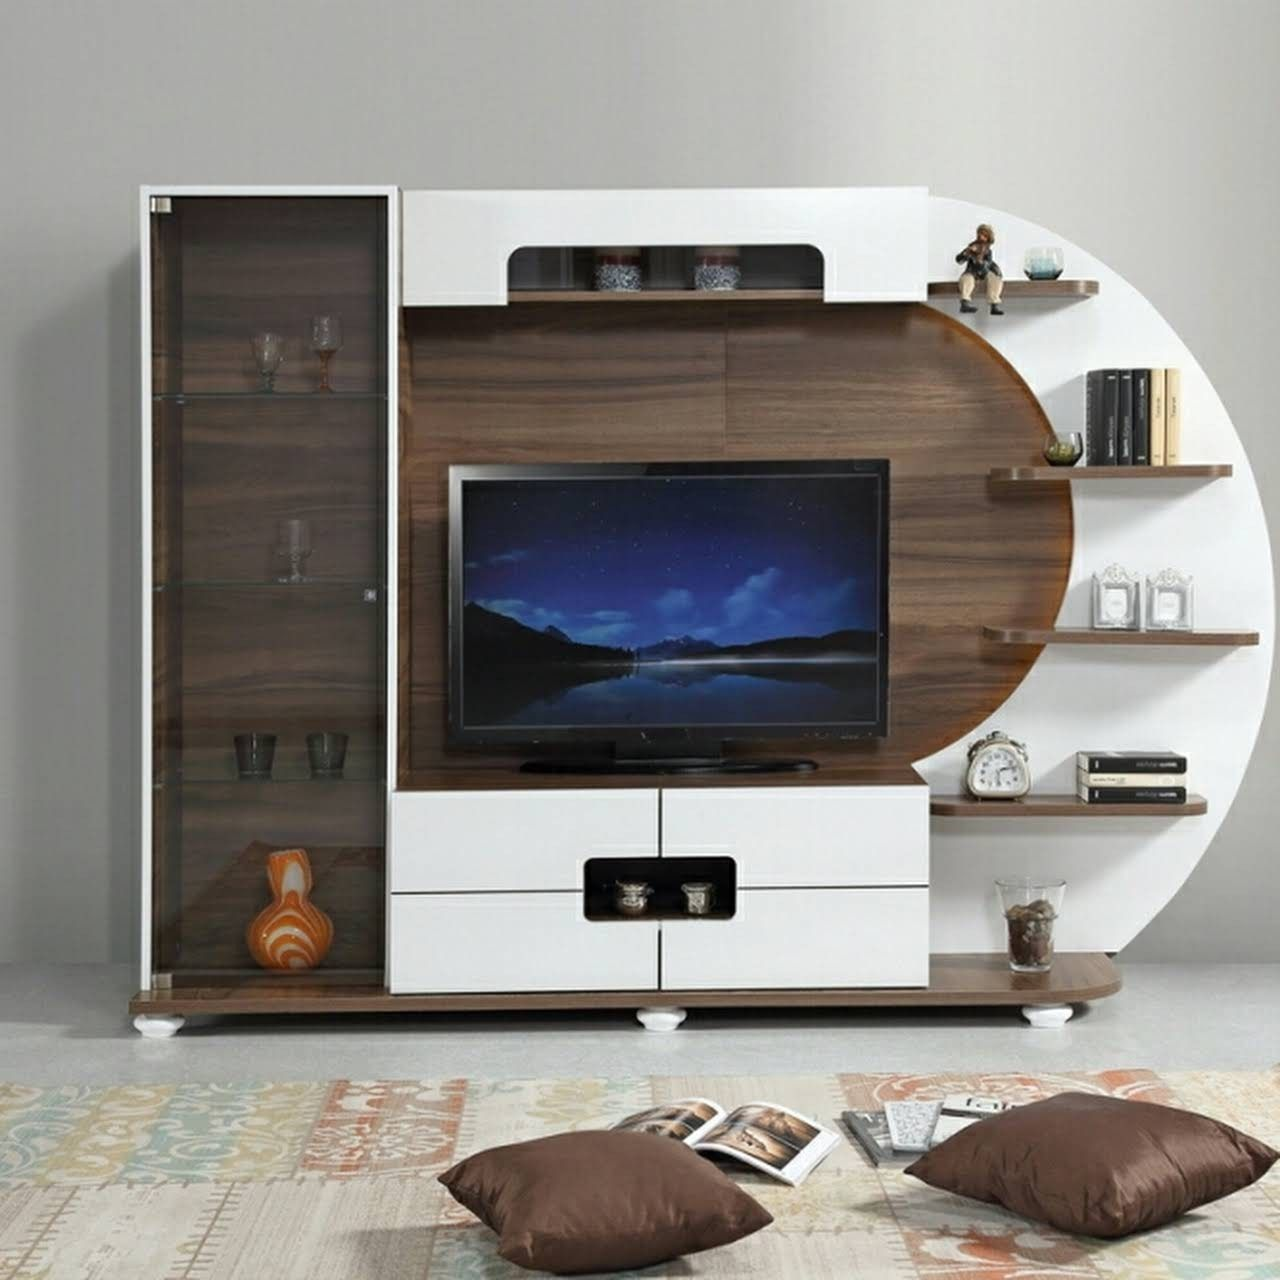 Top 50 Modern Tv Stand Design Ideas For 2020 In 2020 Modern Tv Units Tv Unit Design Tv Cabinet Design